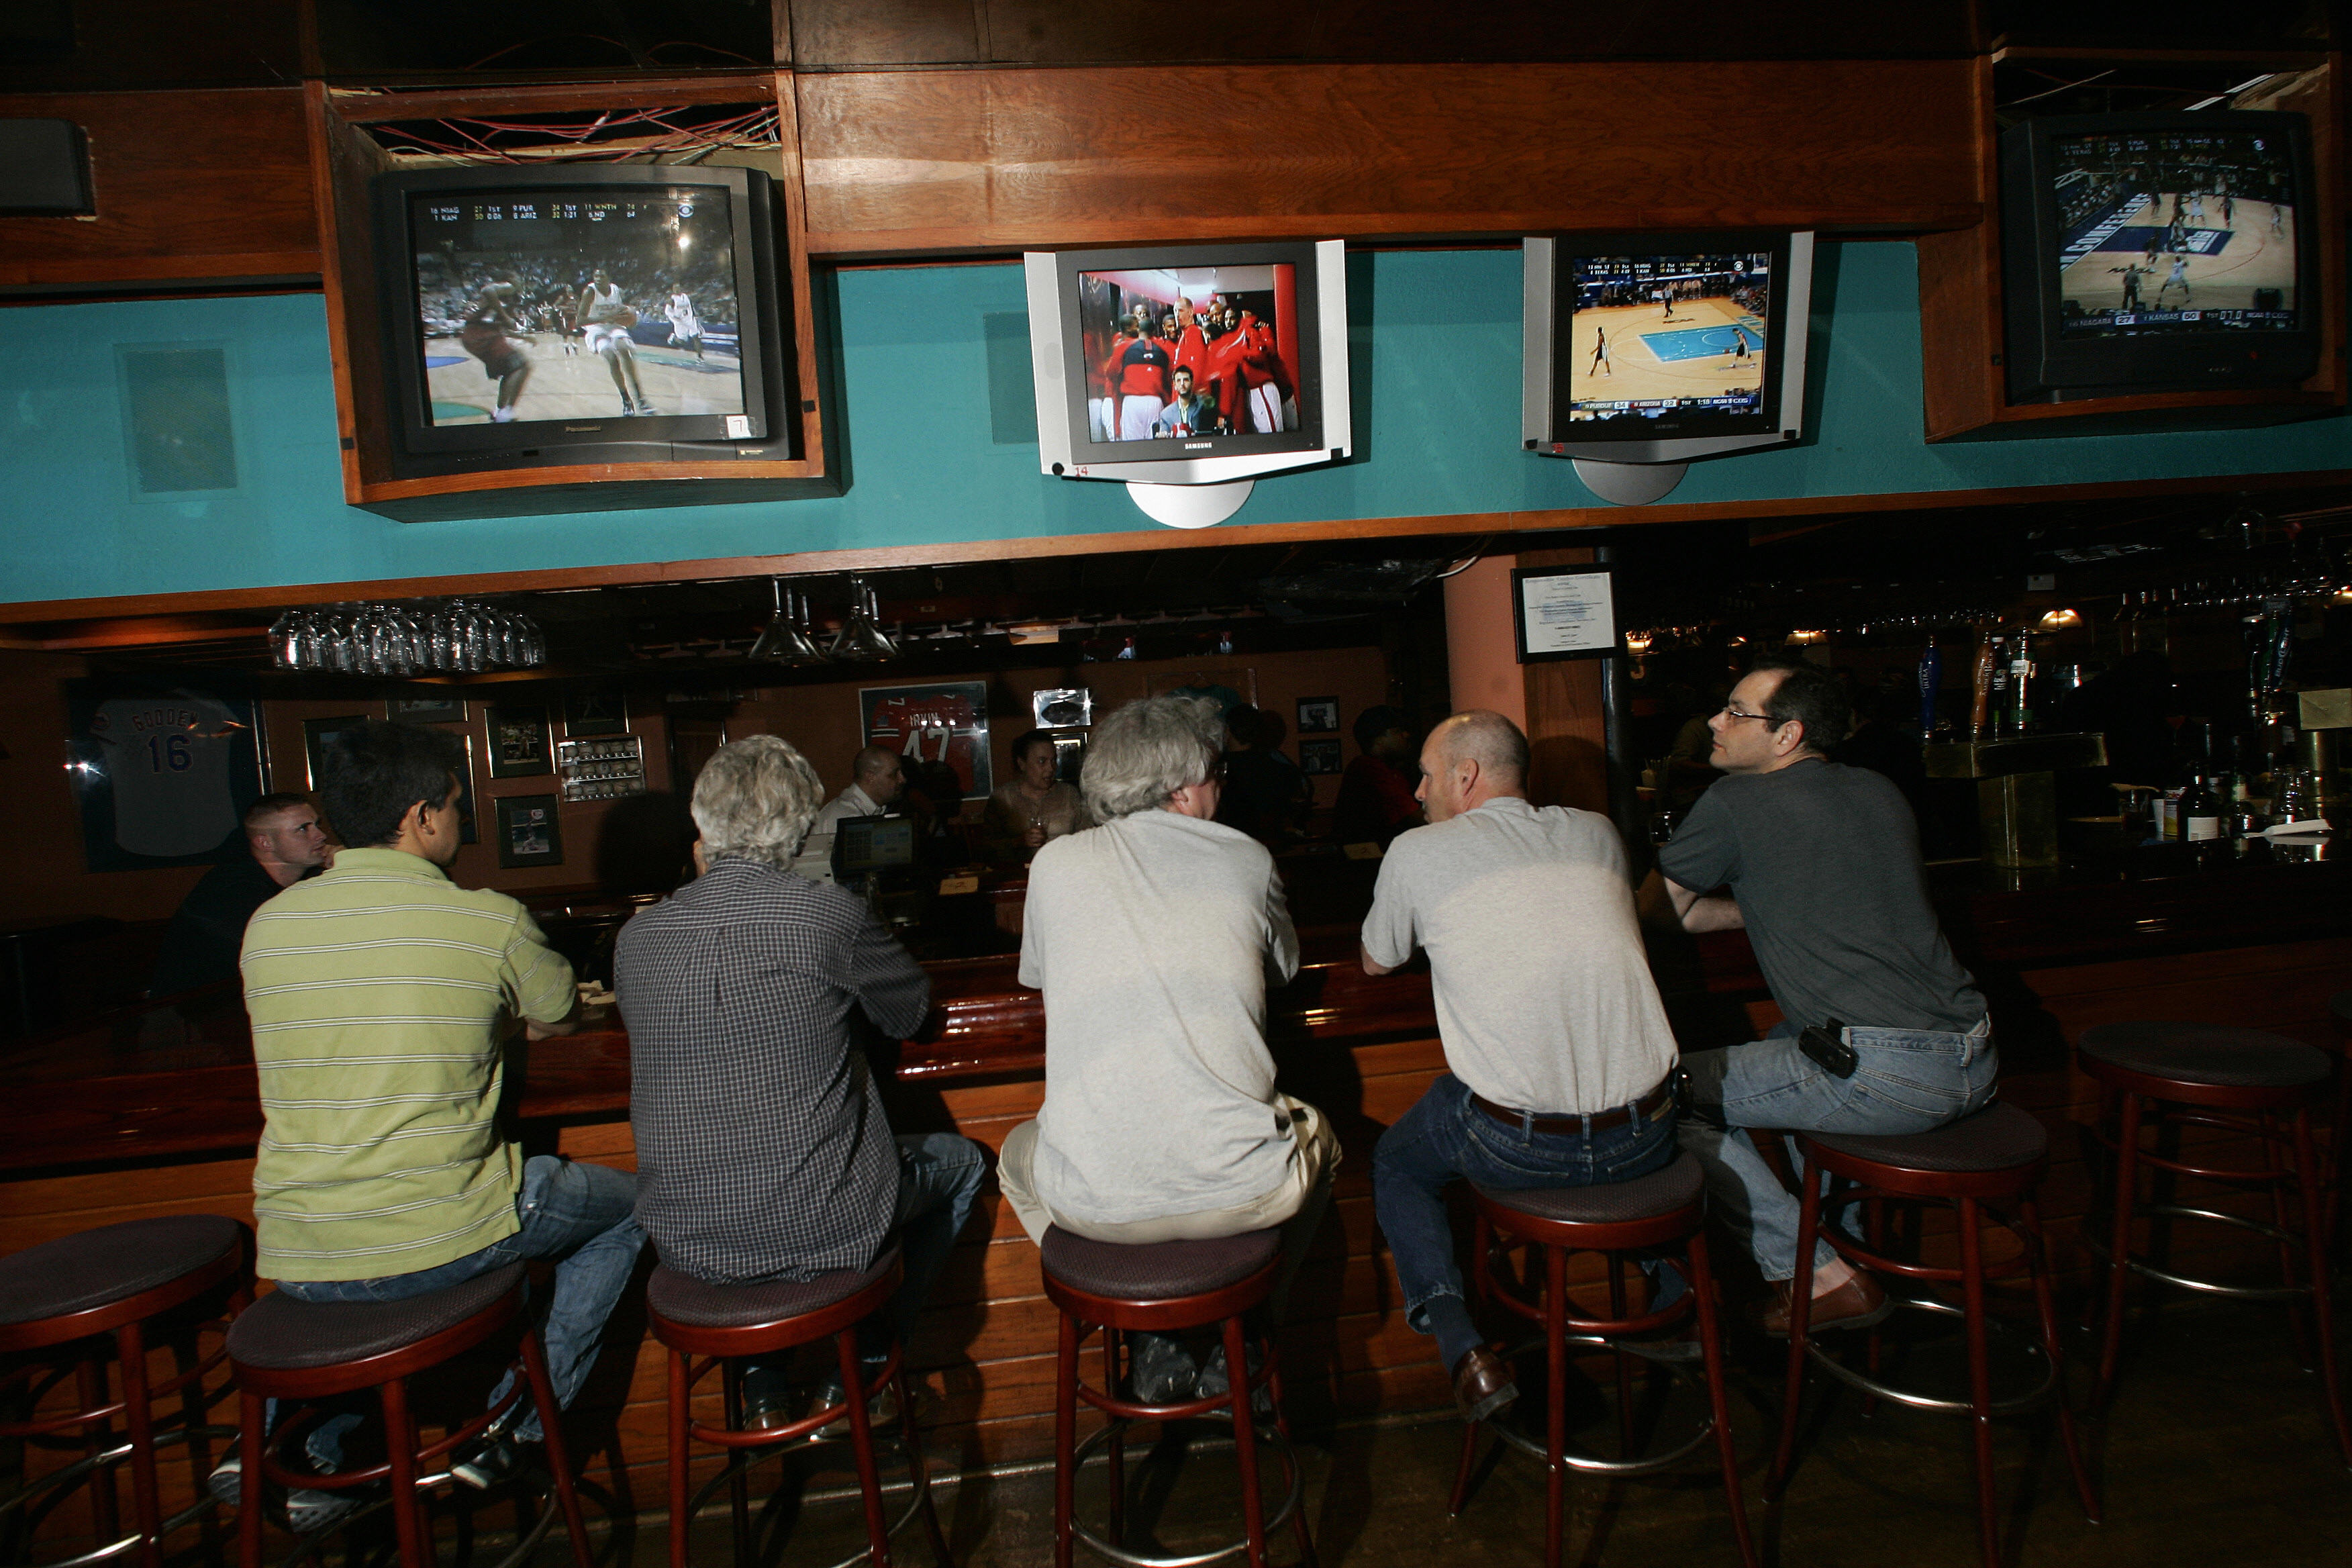 Patrons at Shula's sports bar watch tele